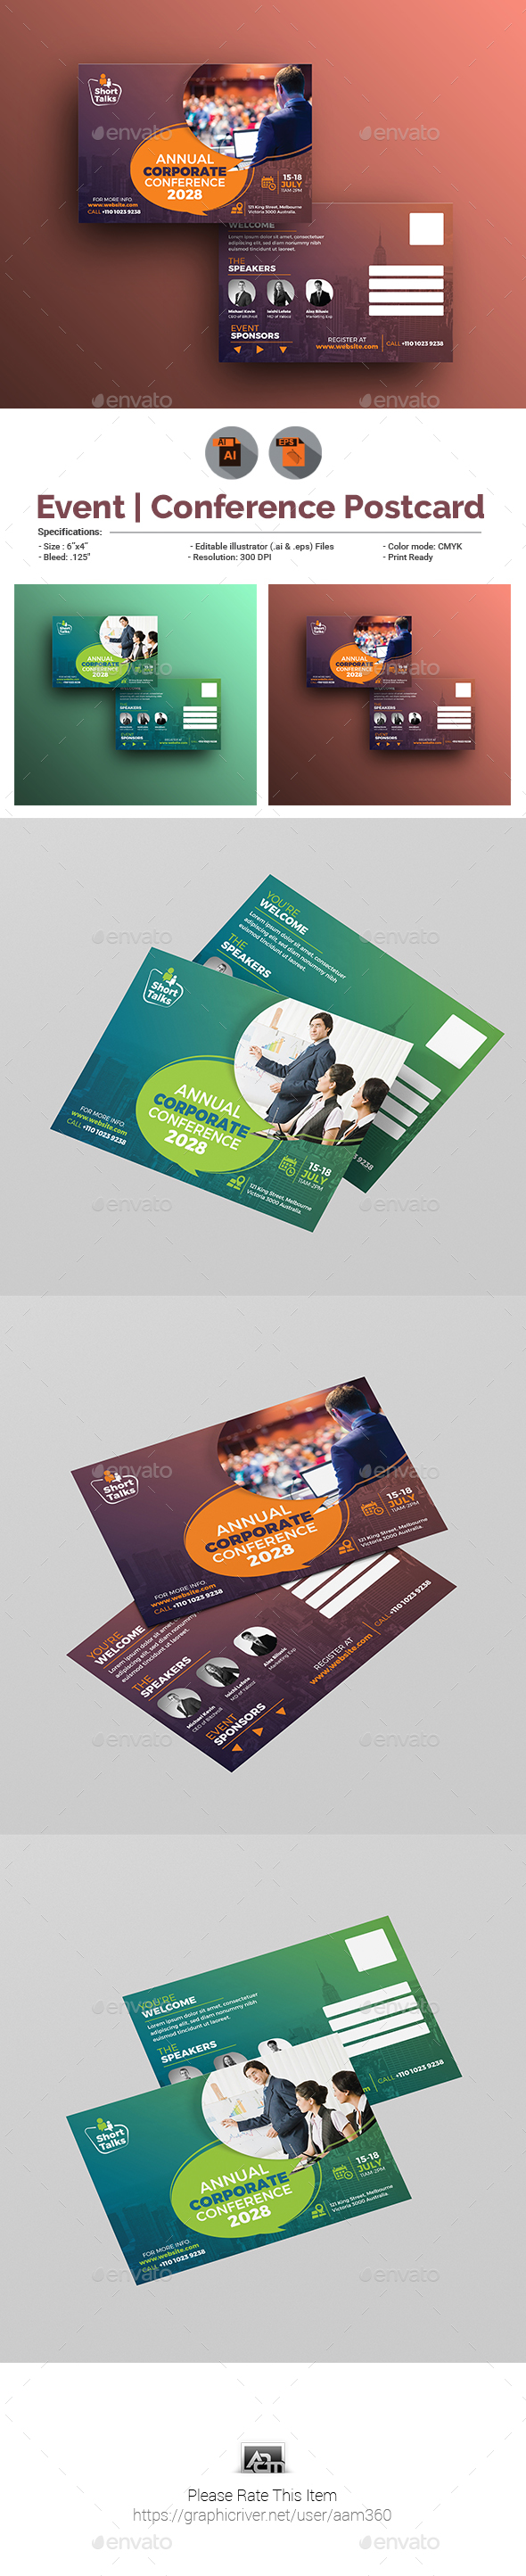 Annual Corporate Event | Conference Postcard - Cards & Invites Print Templates